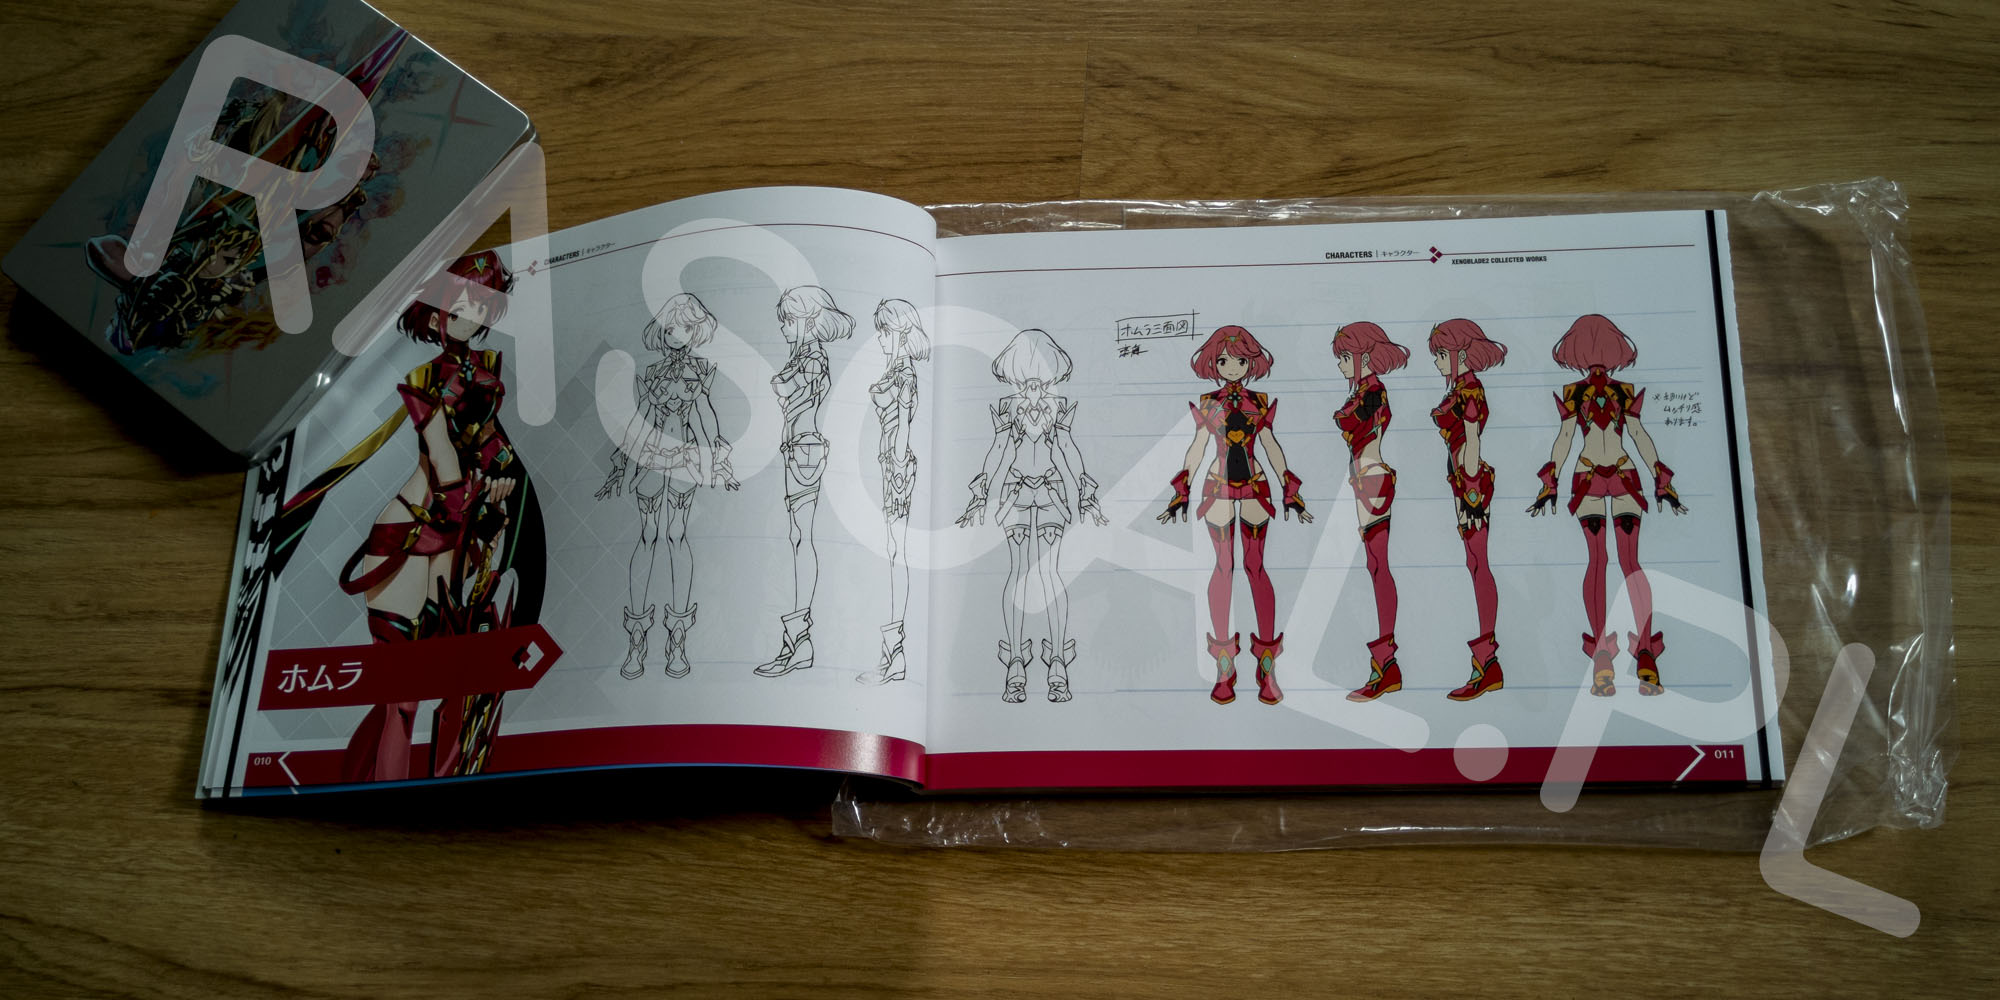 Xenoblade Chronicles 2 Collectors Edition Artbook - 03 - Homura